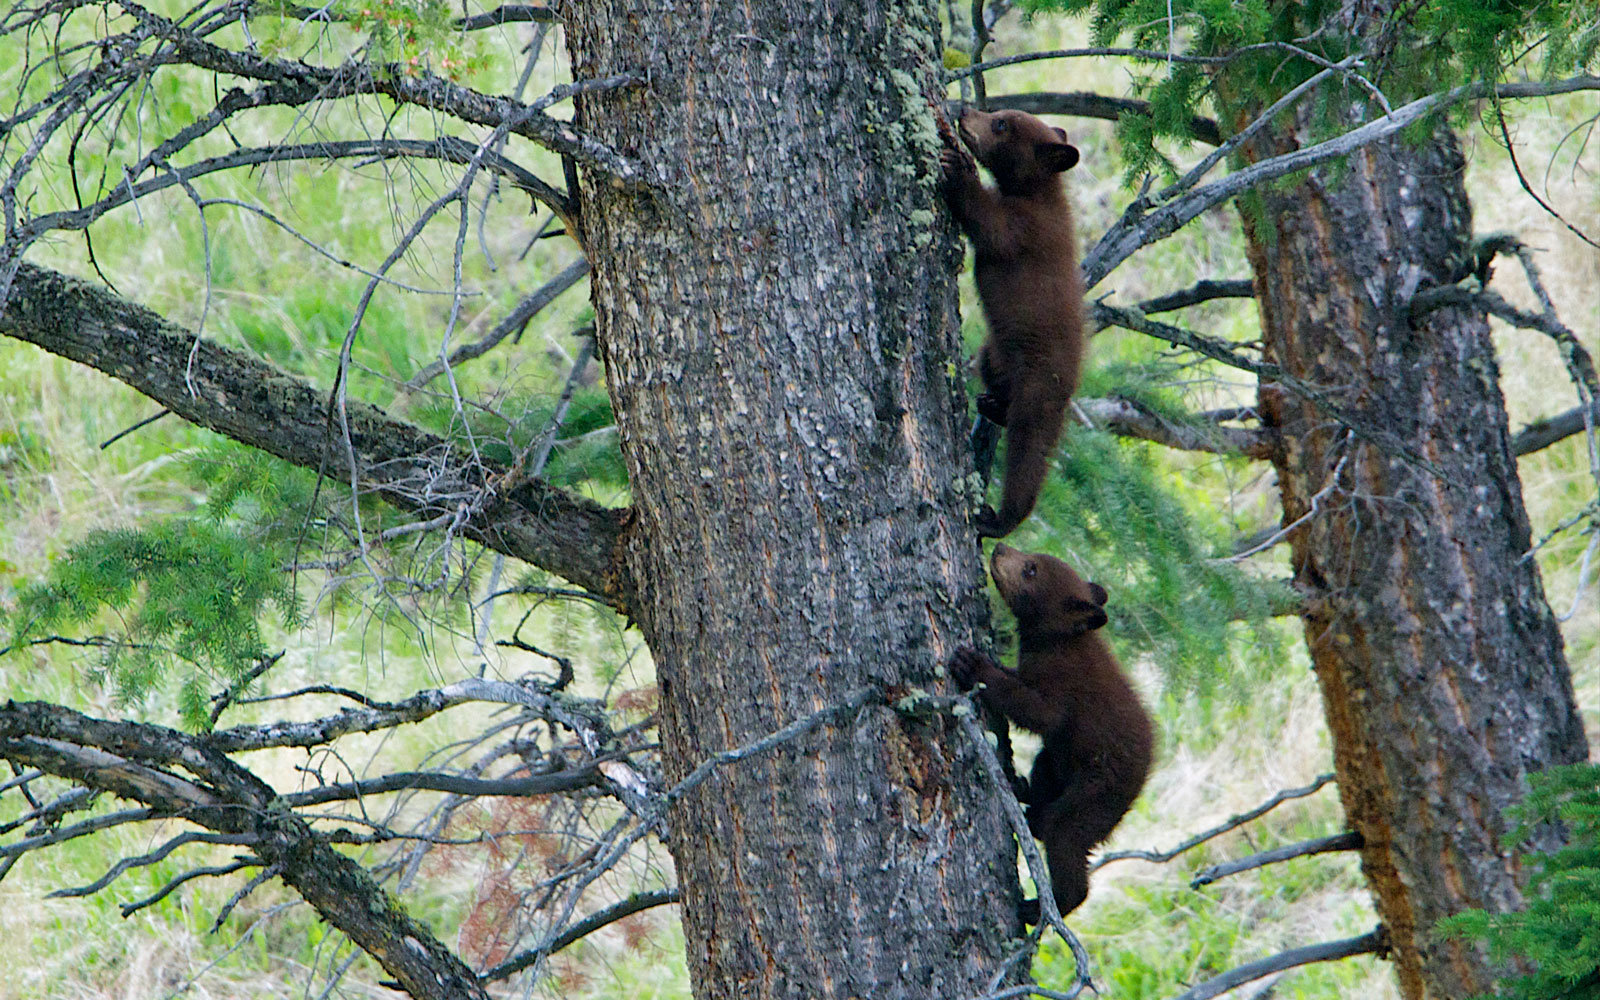 Black bear cubs race each other to the top of the tree in Yellowstone National Park, in Wyoming.